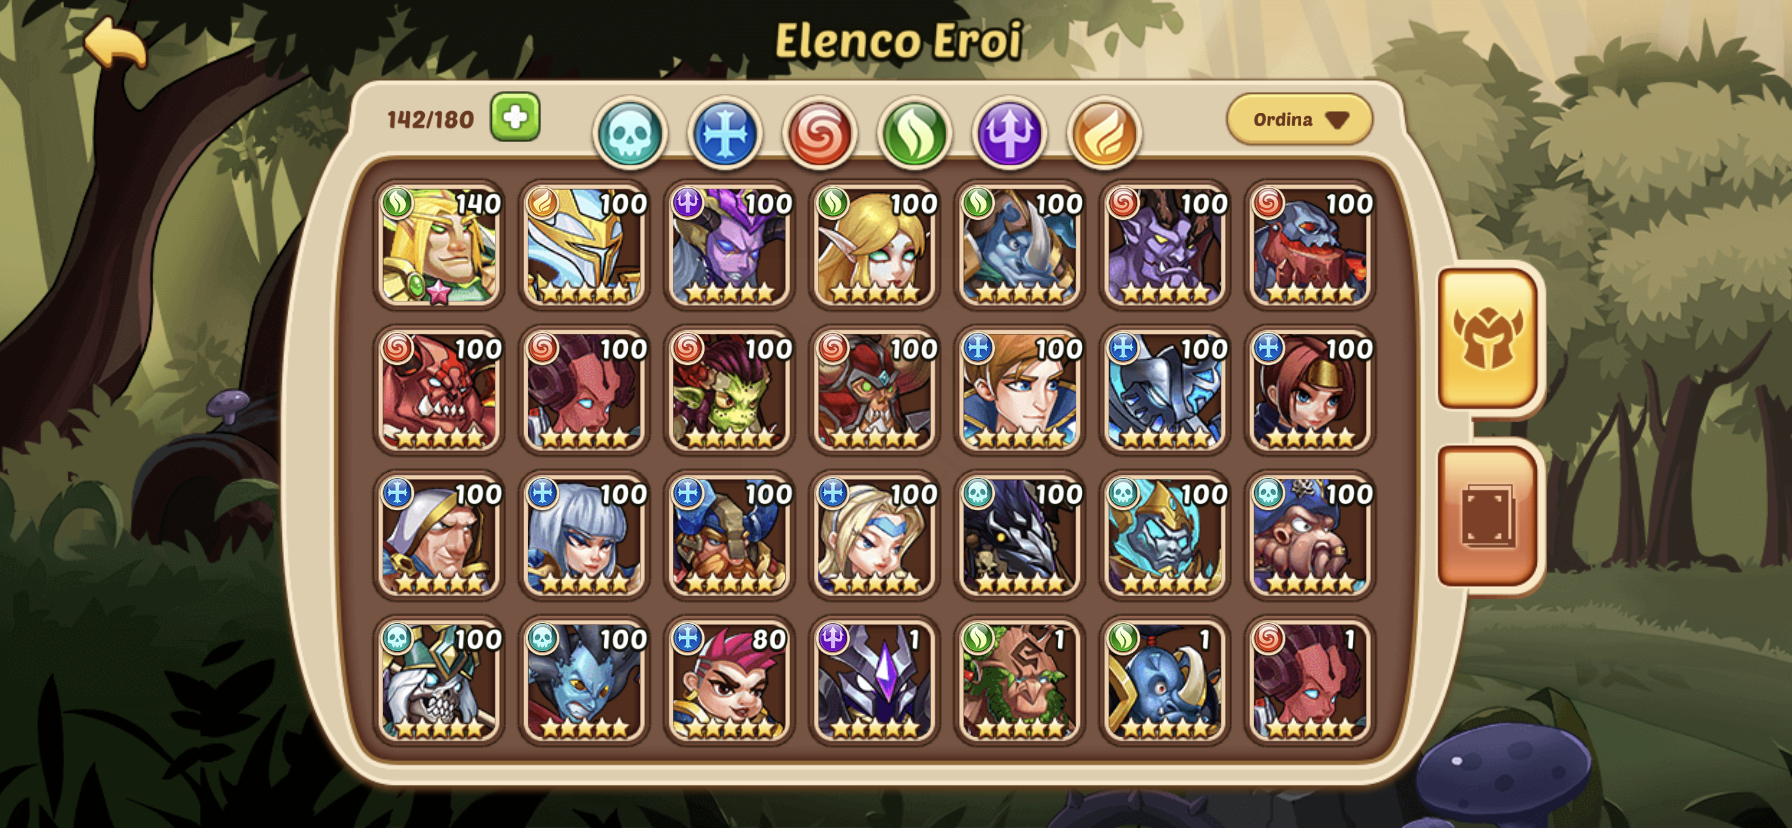 someone can help me create a good team?